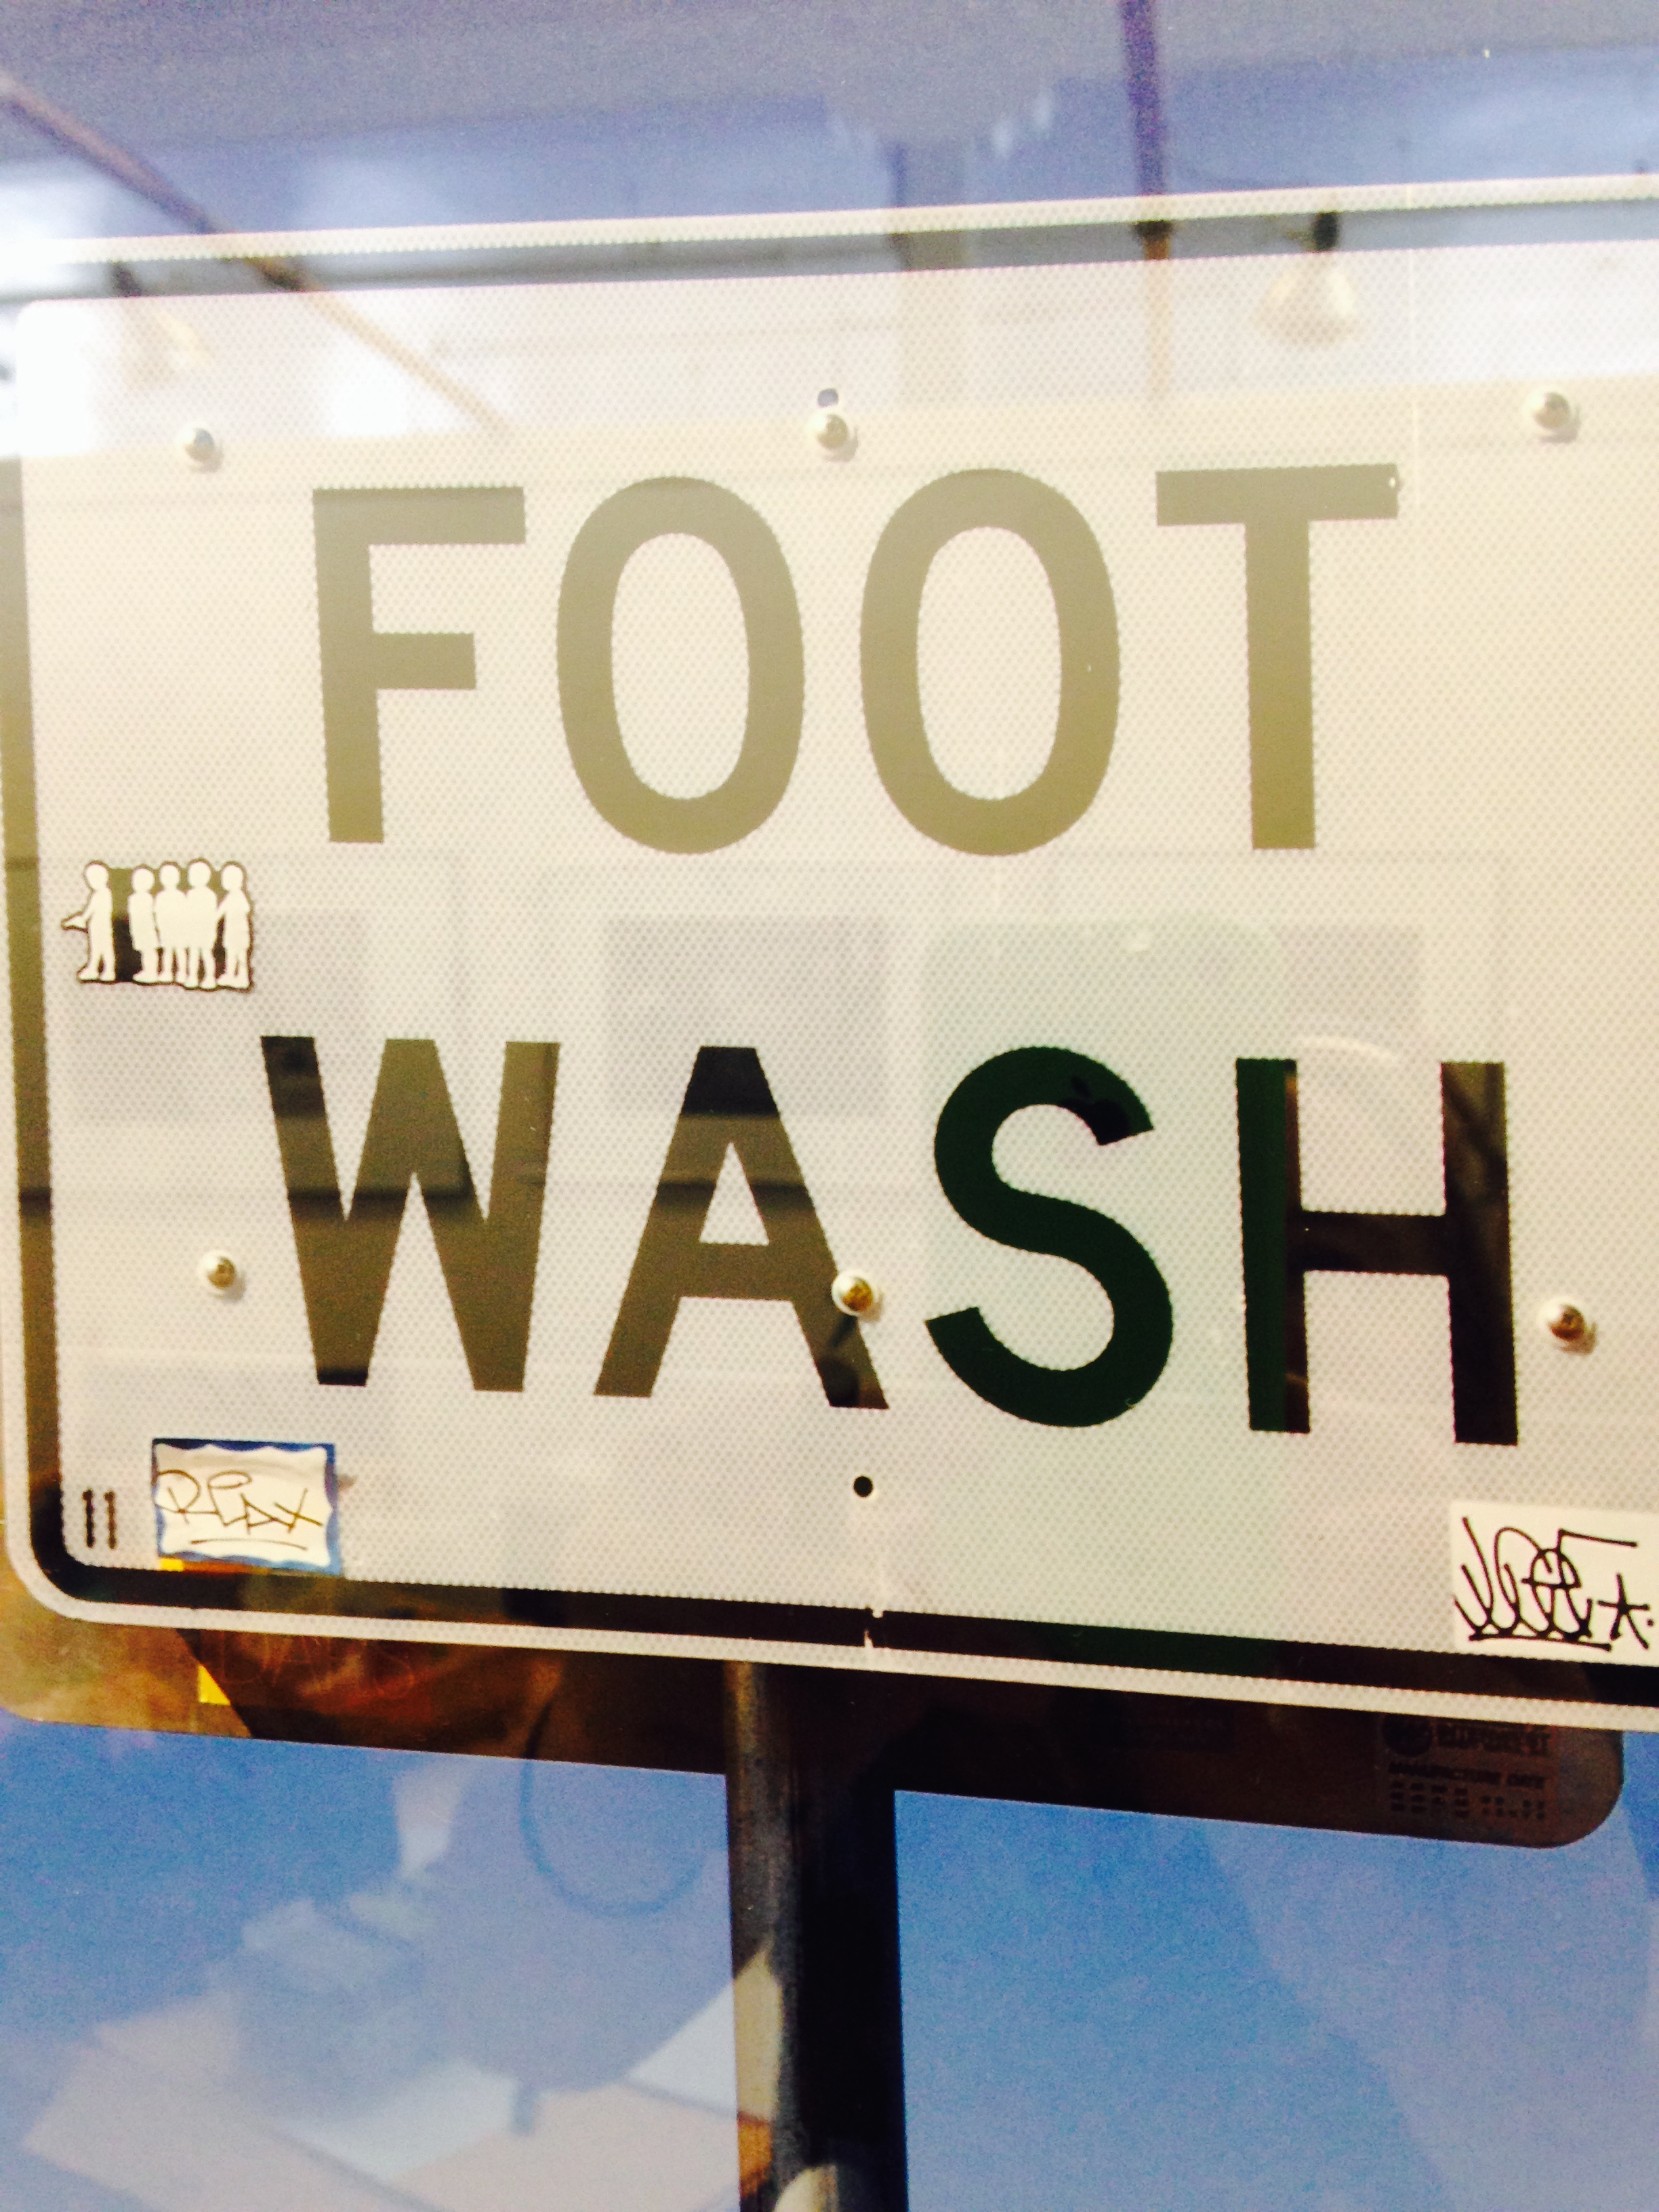 Ellen Rosenthal studio foot wash sign